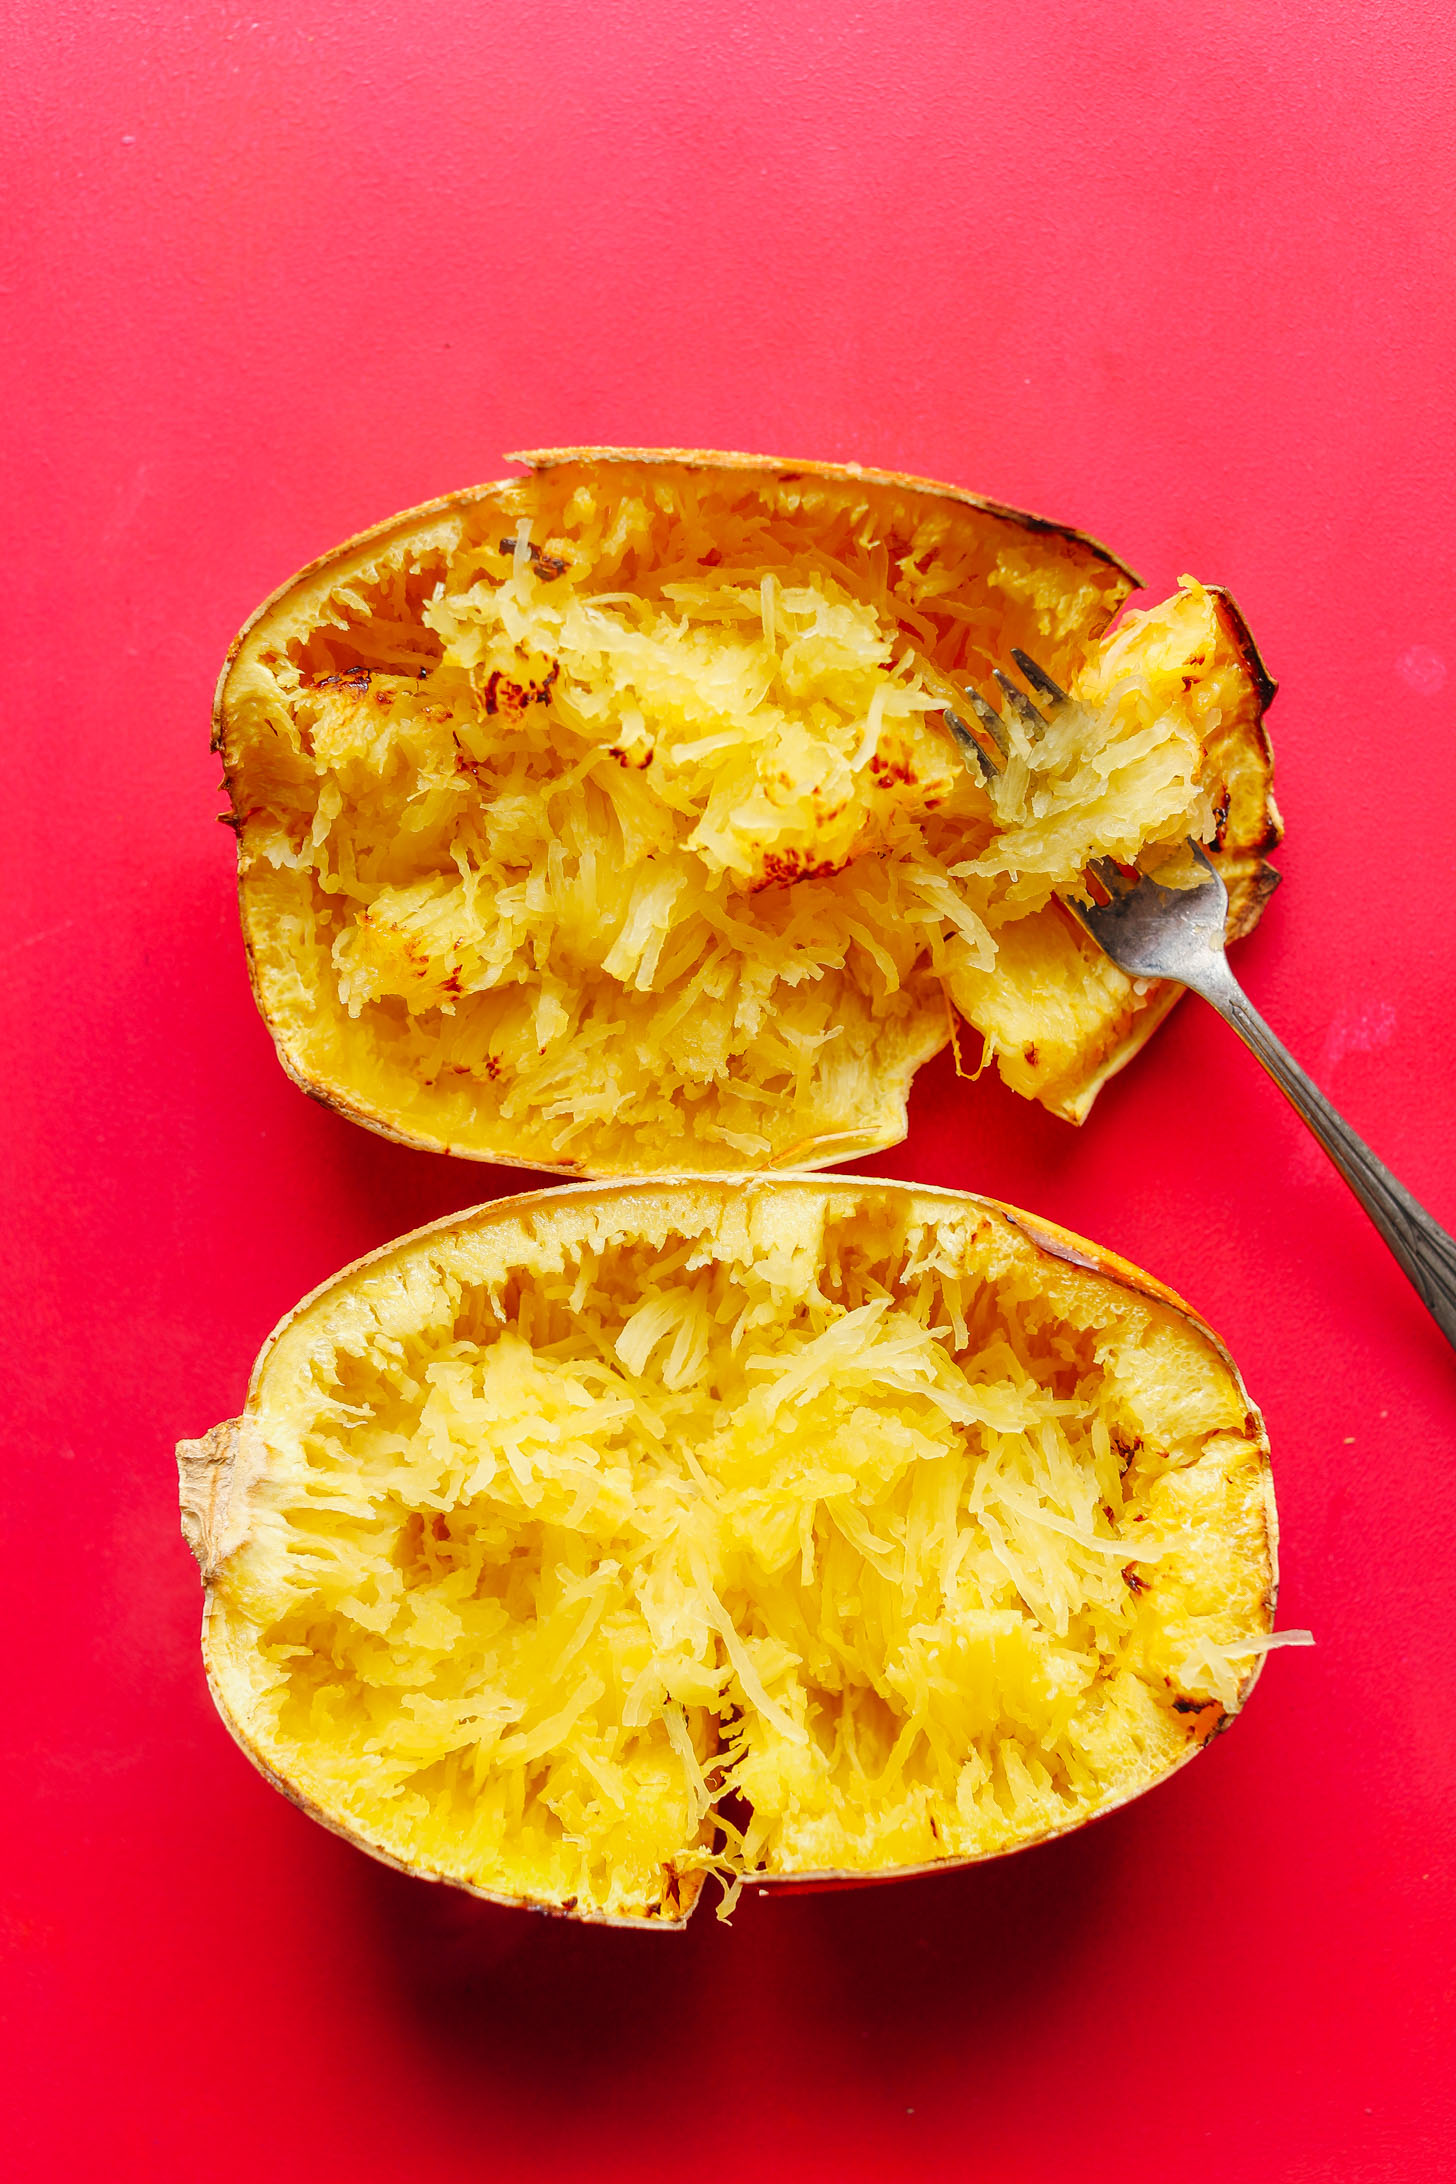 Finely shredded halved spaghetti squash in the skins